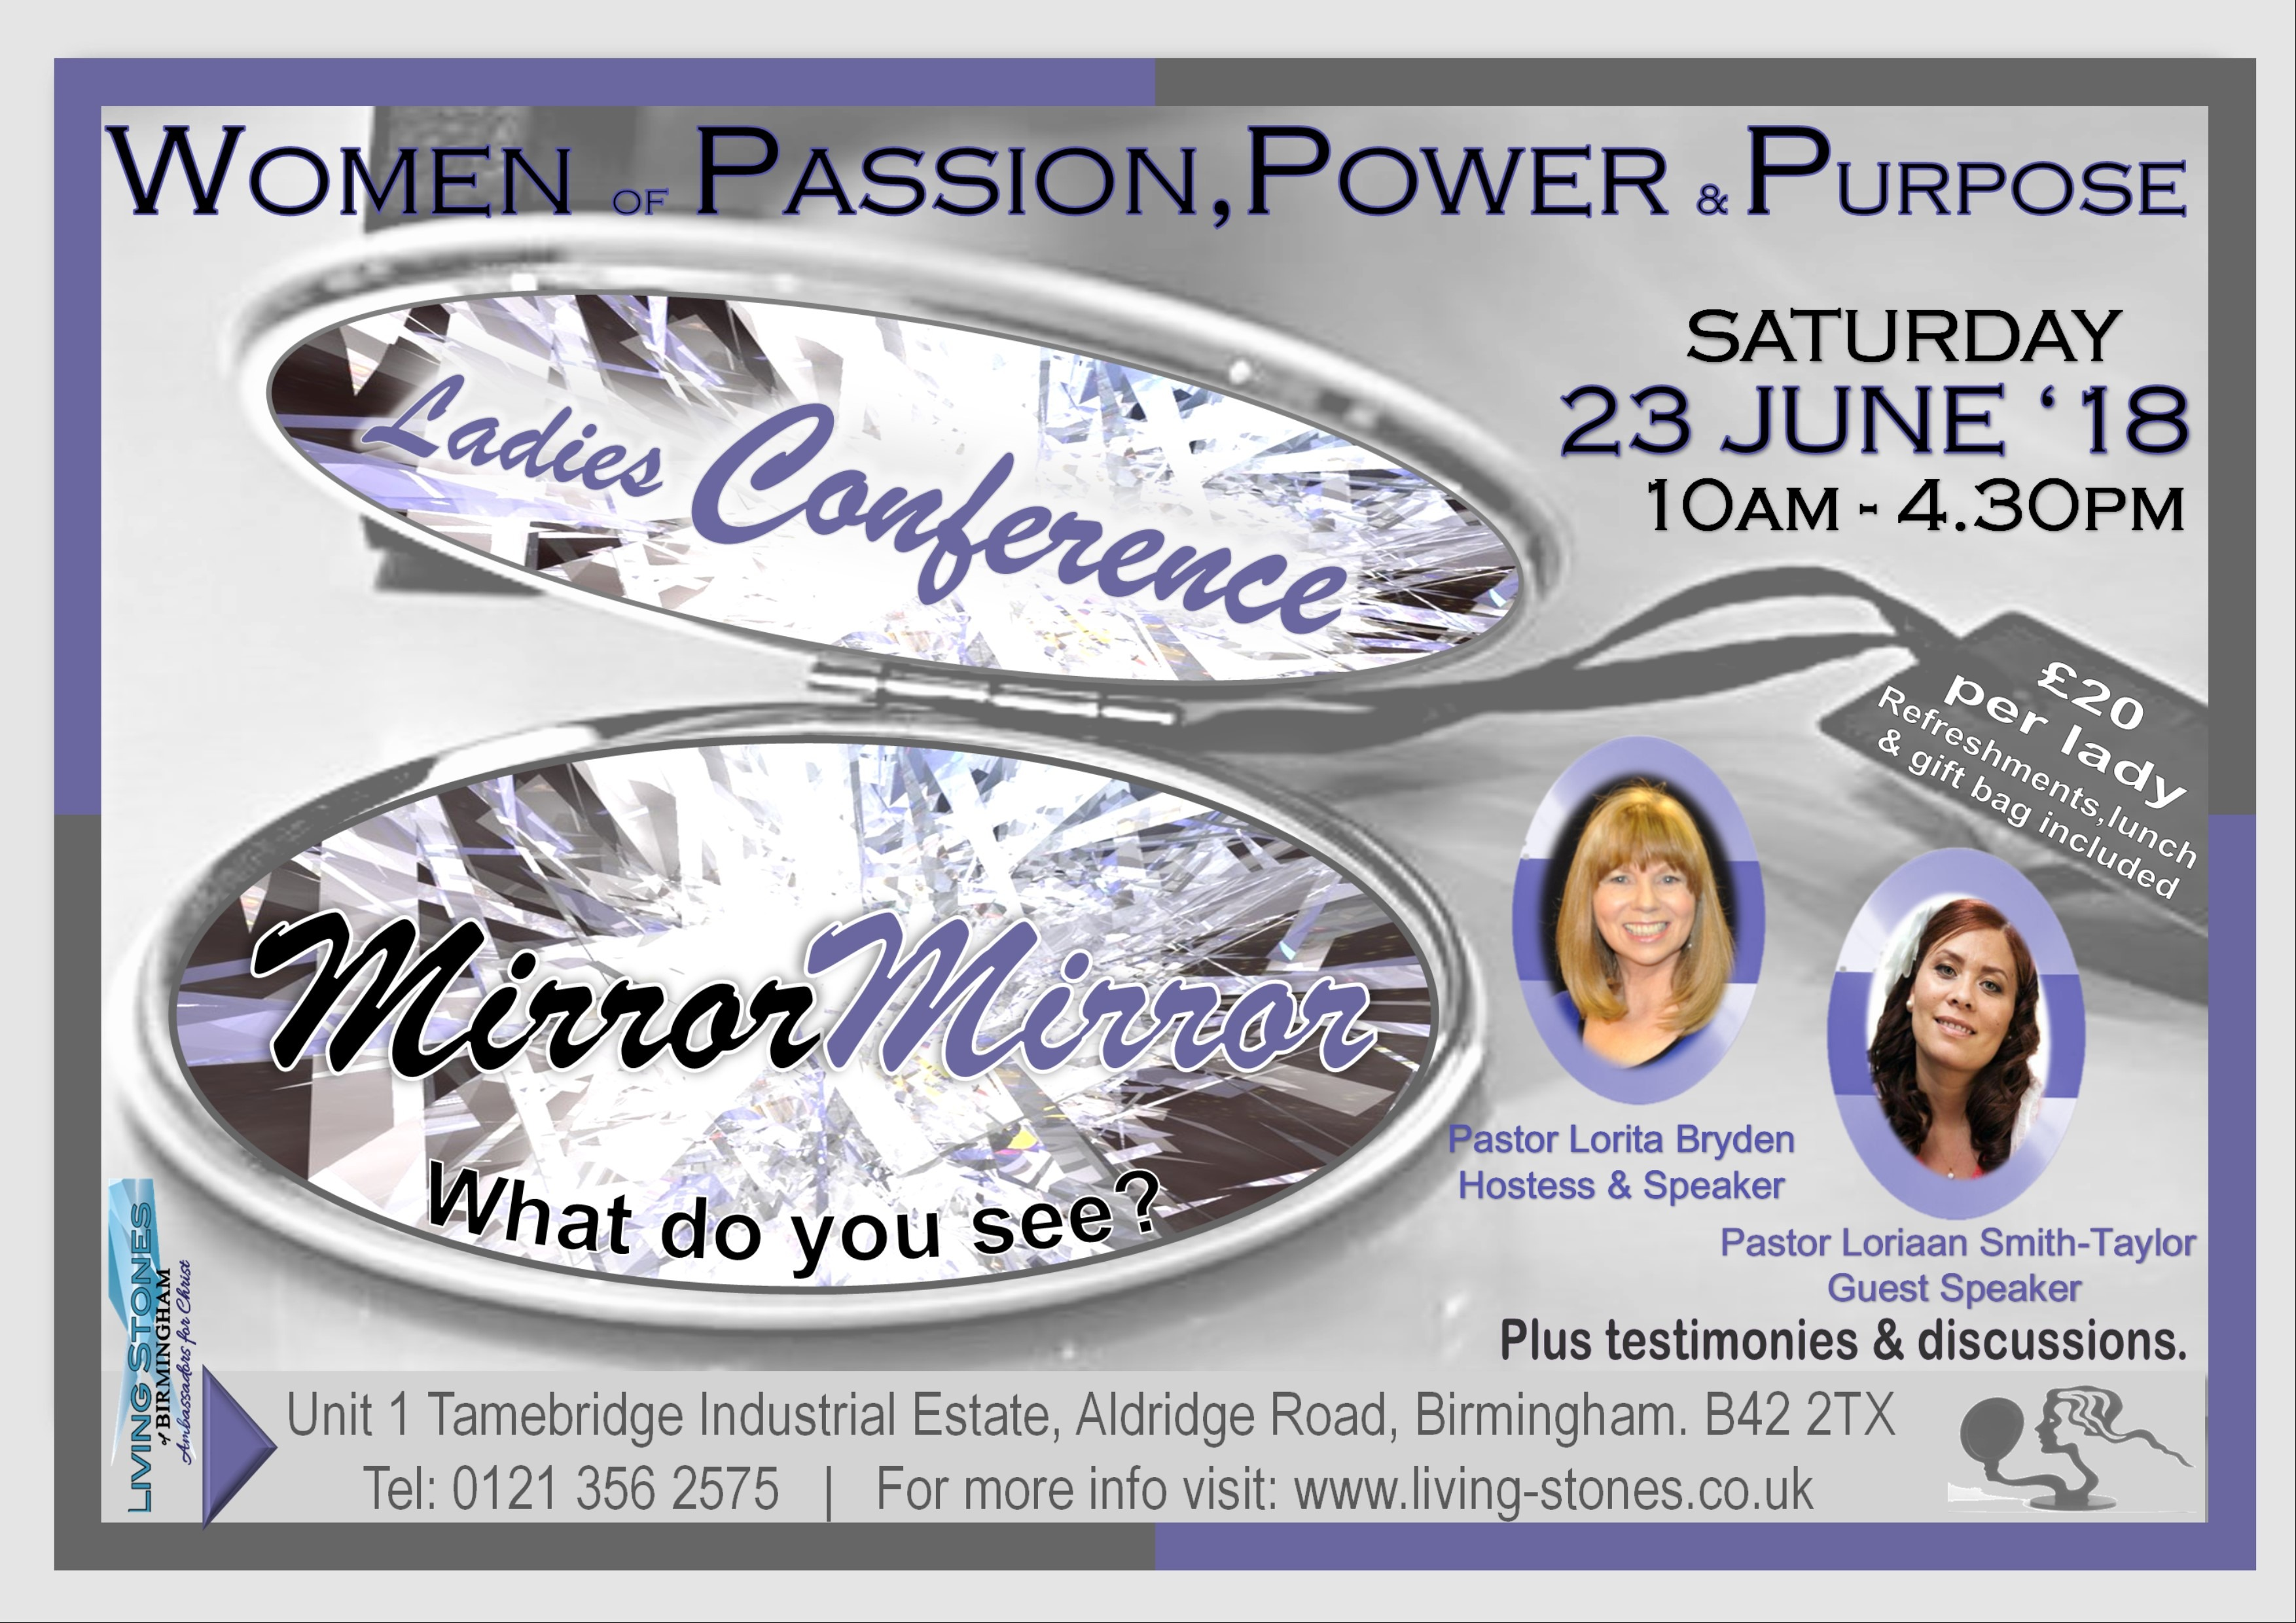 Women of Passion, Power & Purpose 2018 Ladies Conference